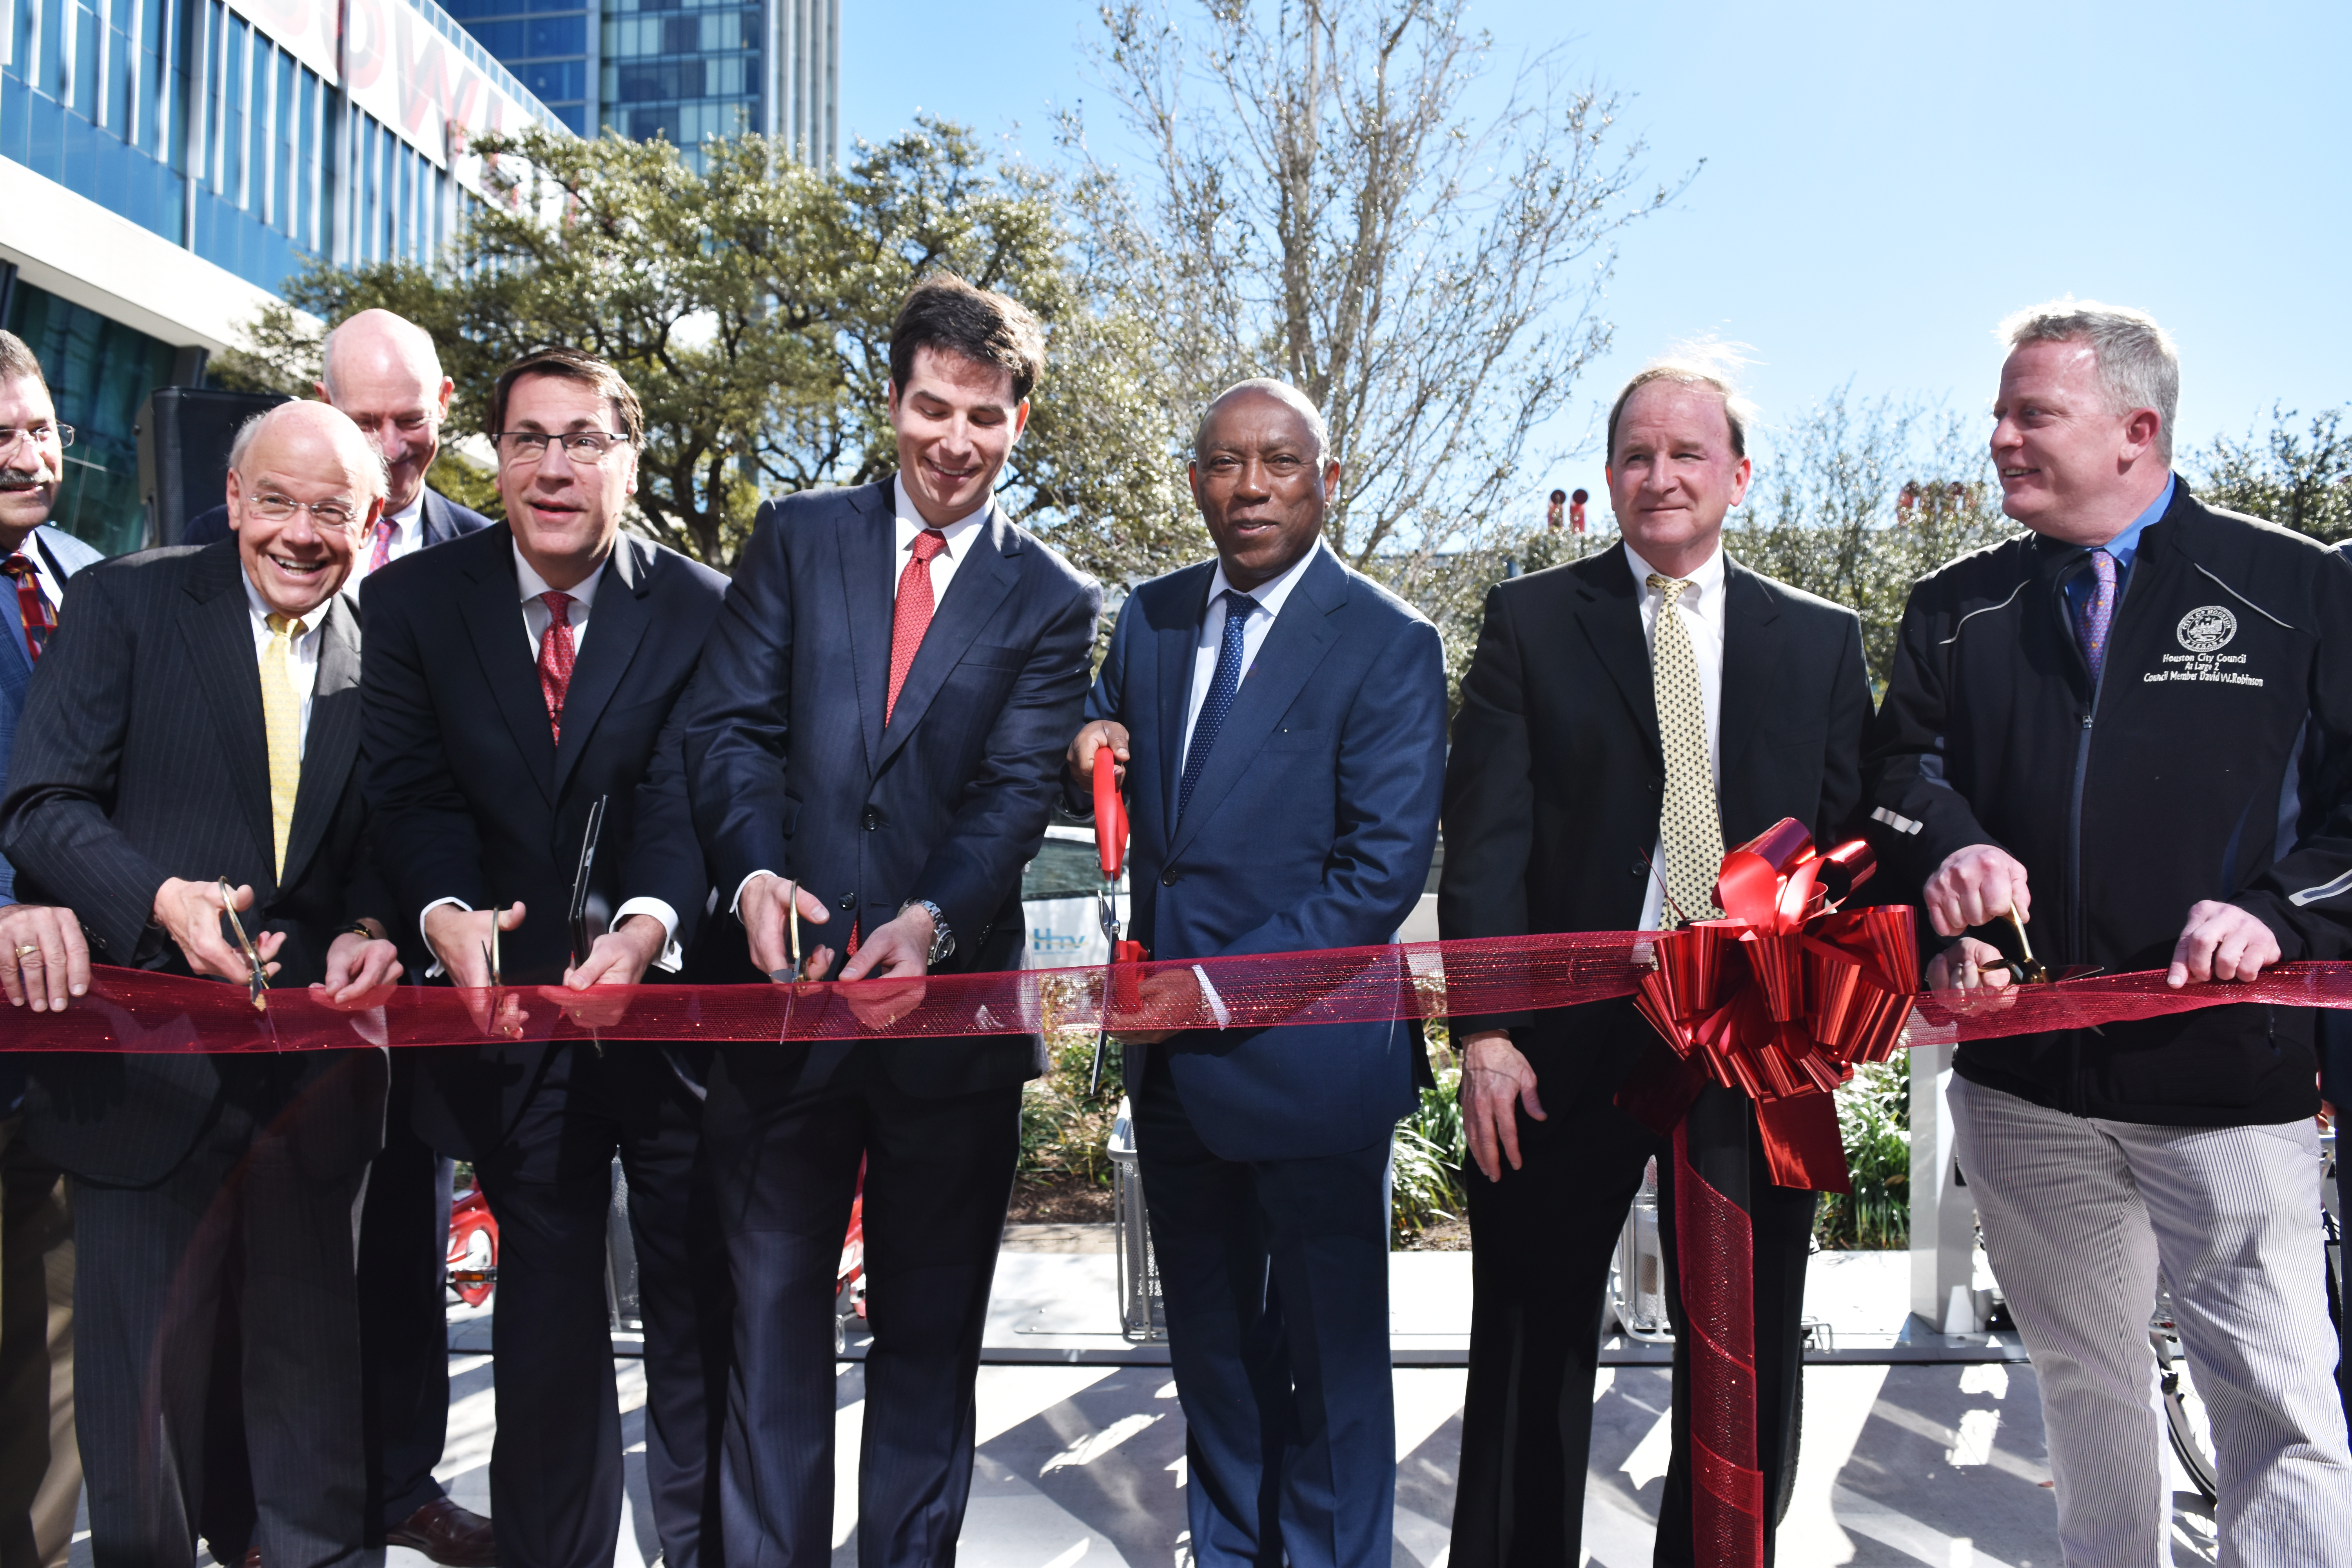 Mayor Turner, Carter Stern and Mark Montgomery with City council Members Cutting Ribbon